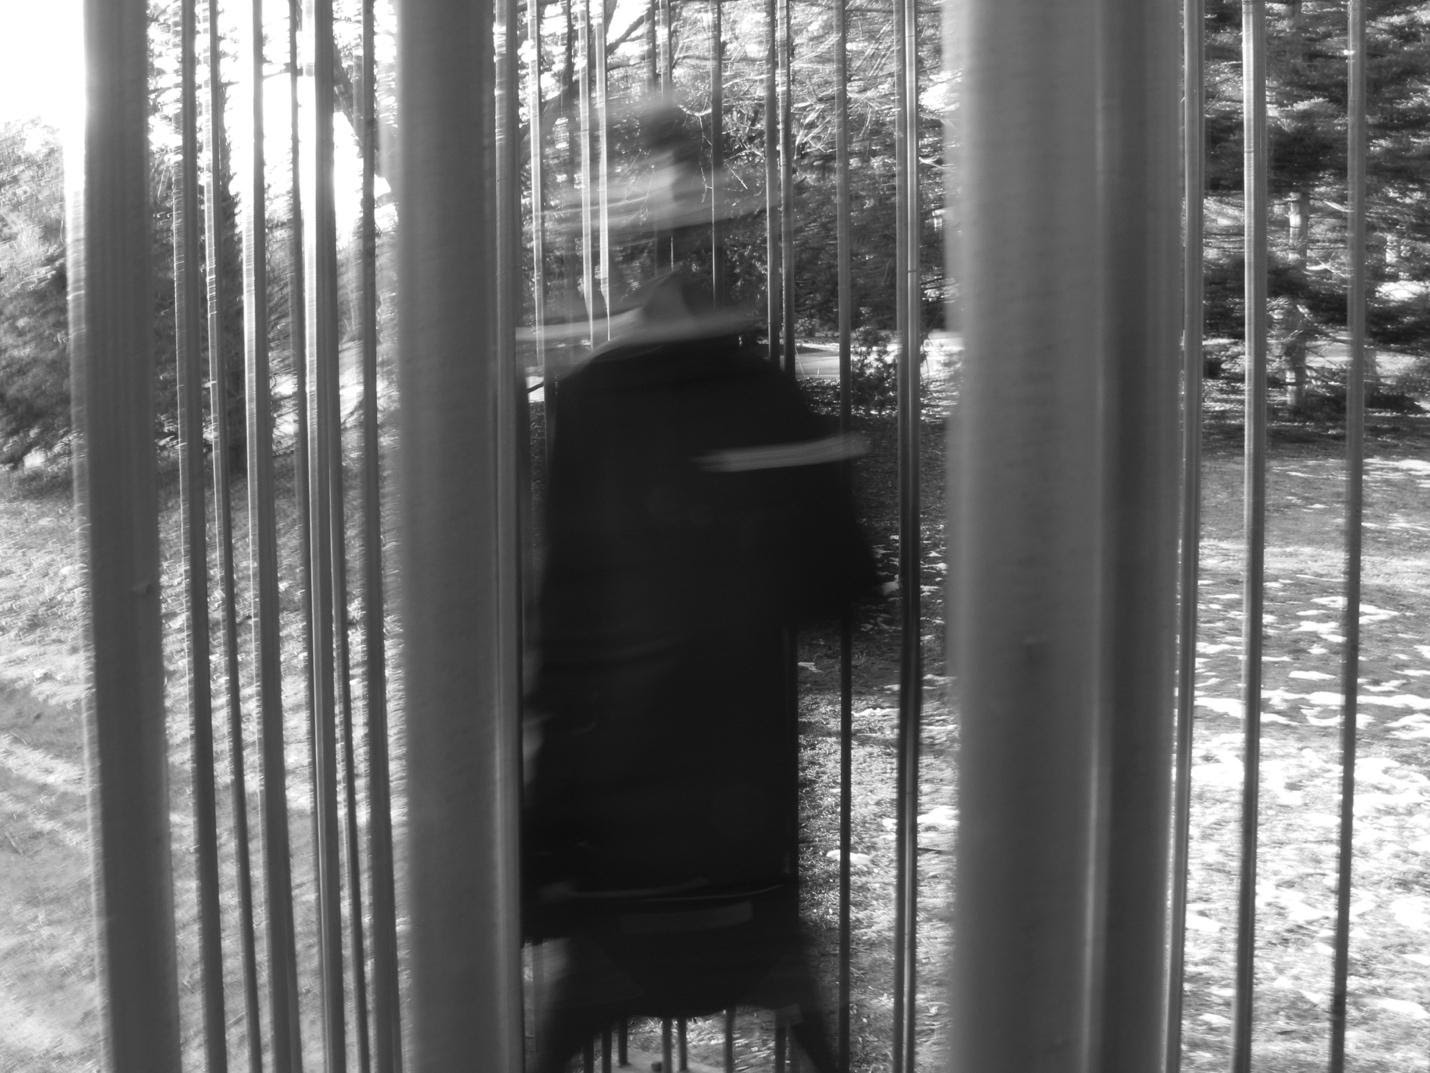 """""""Yes I'm Changing"""" - 04: Man Running Through Life-Size Cage. Ambiguous Space (55-57), Medium Long Shot (Bordwell and Thompson, 189)"""